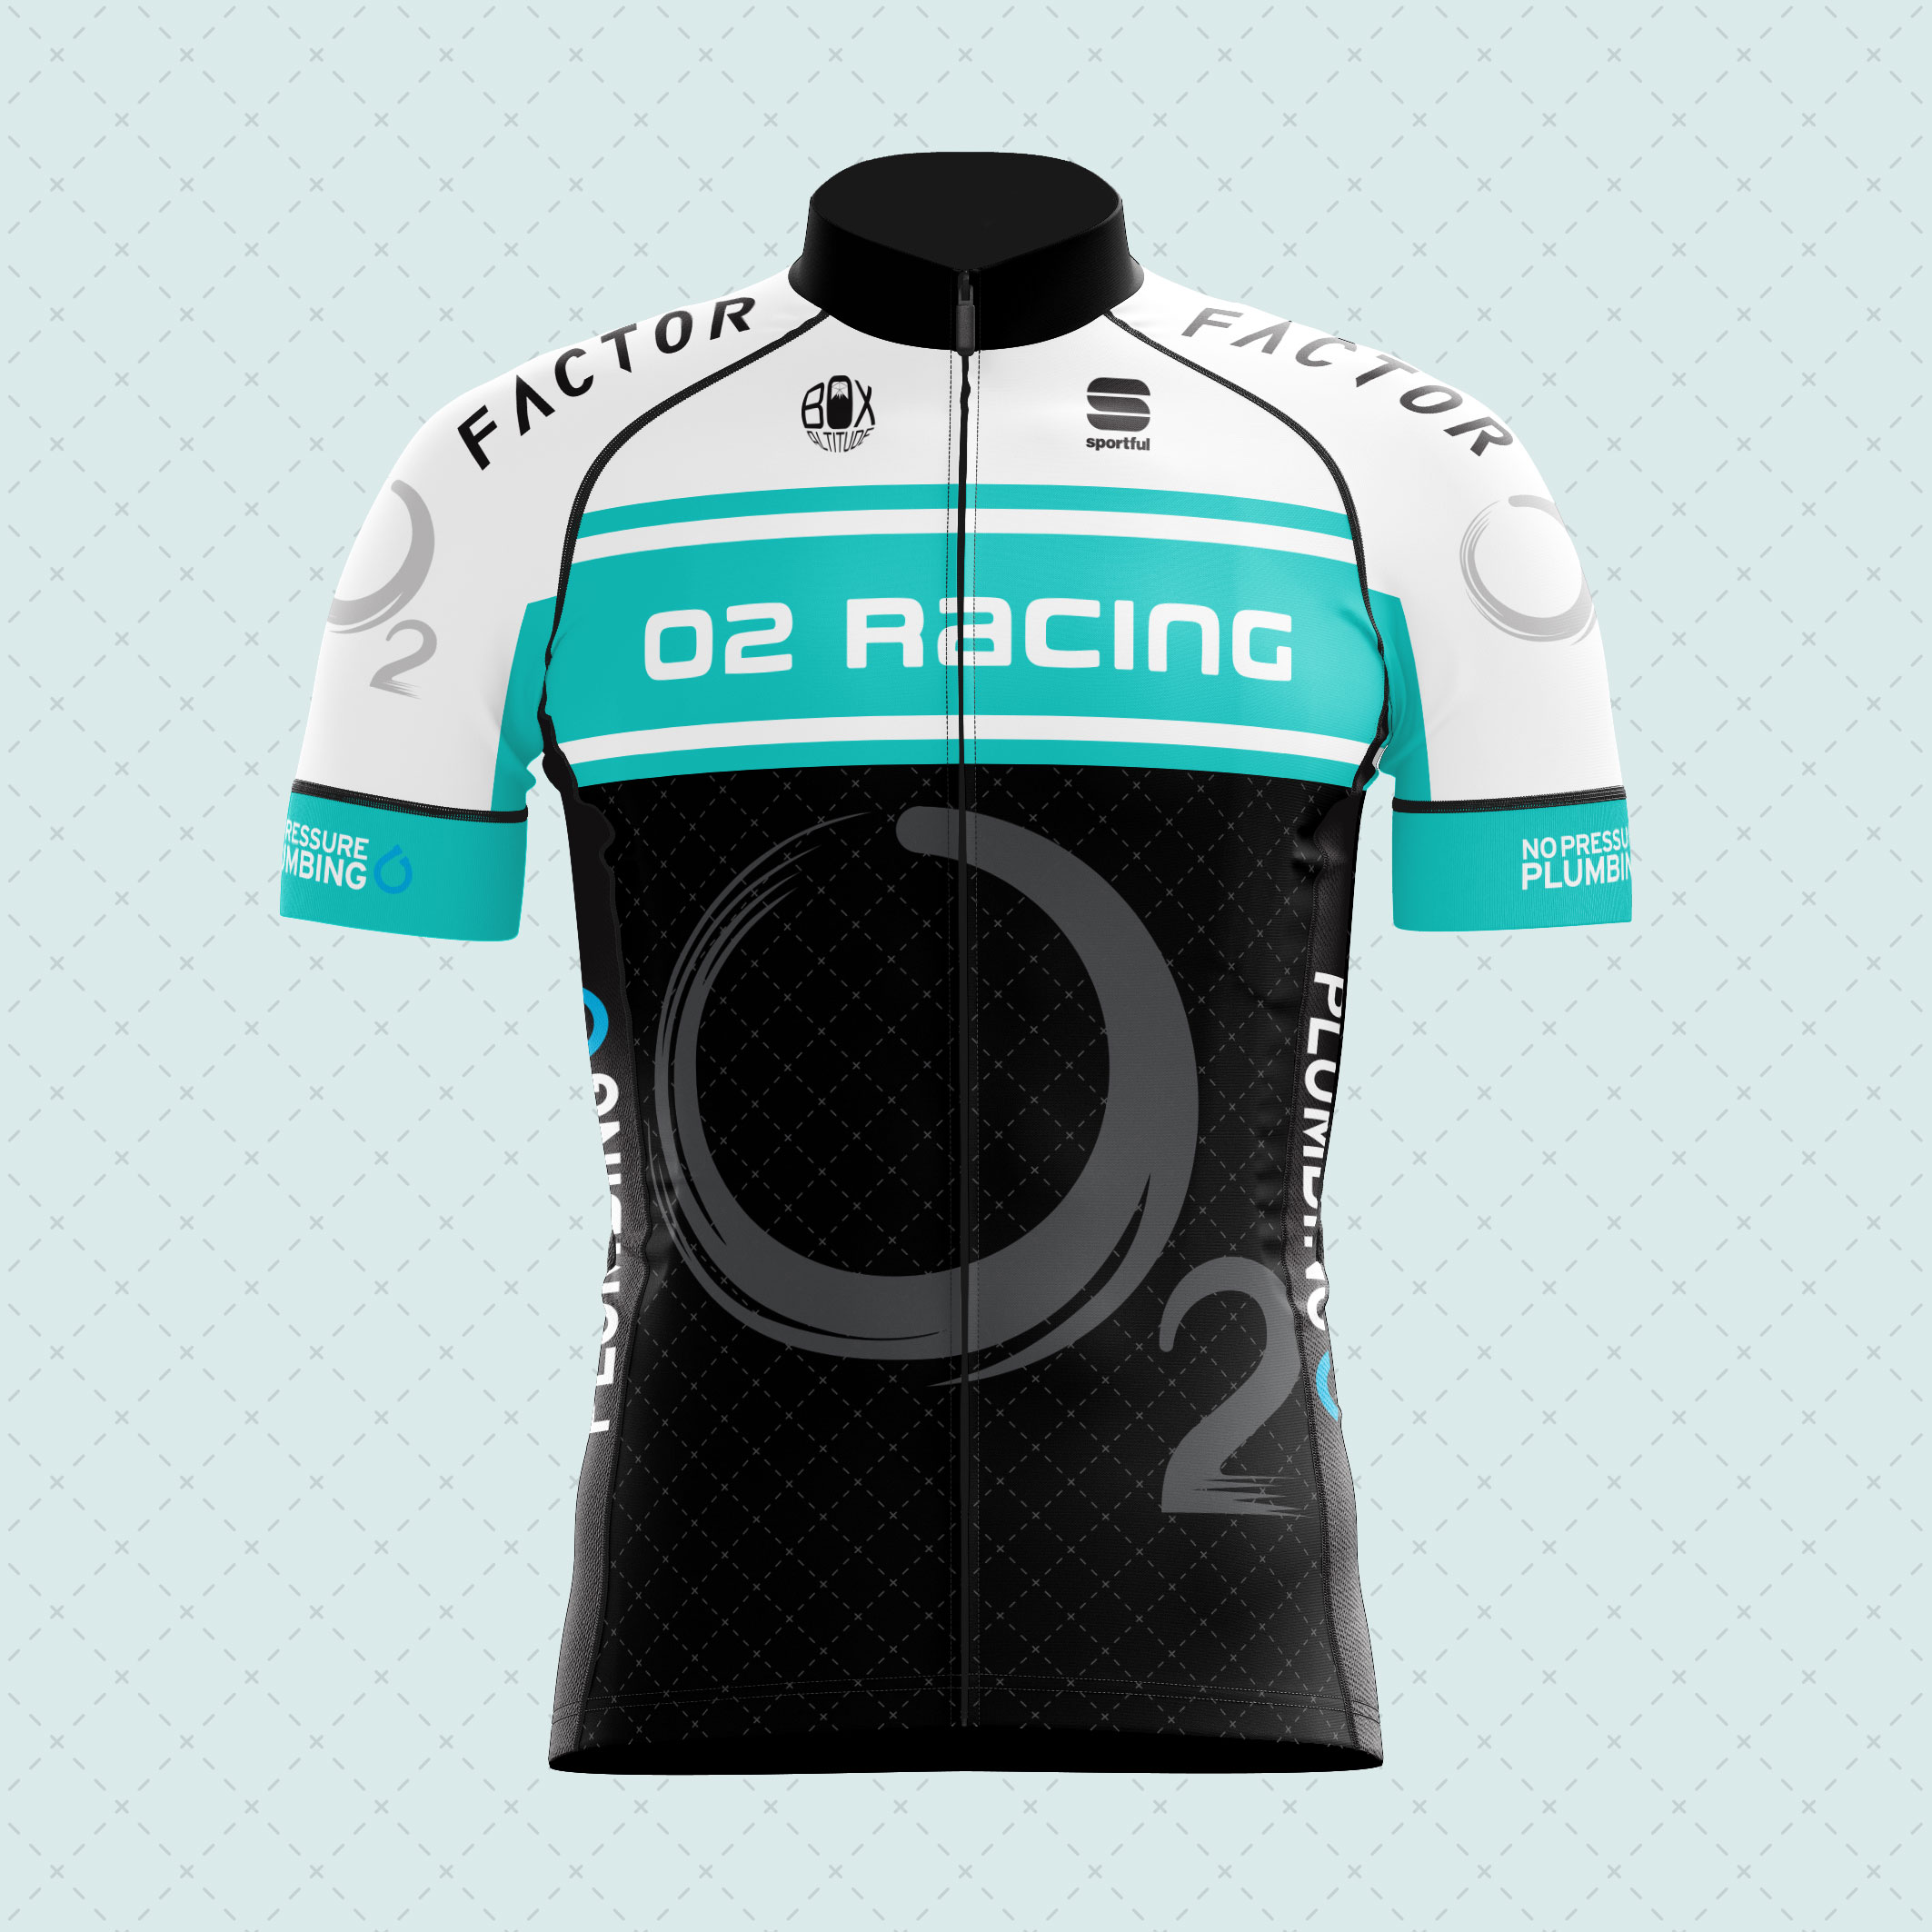 O2 Racing cycling kit manufactured by Sportful